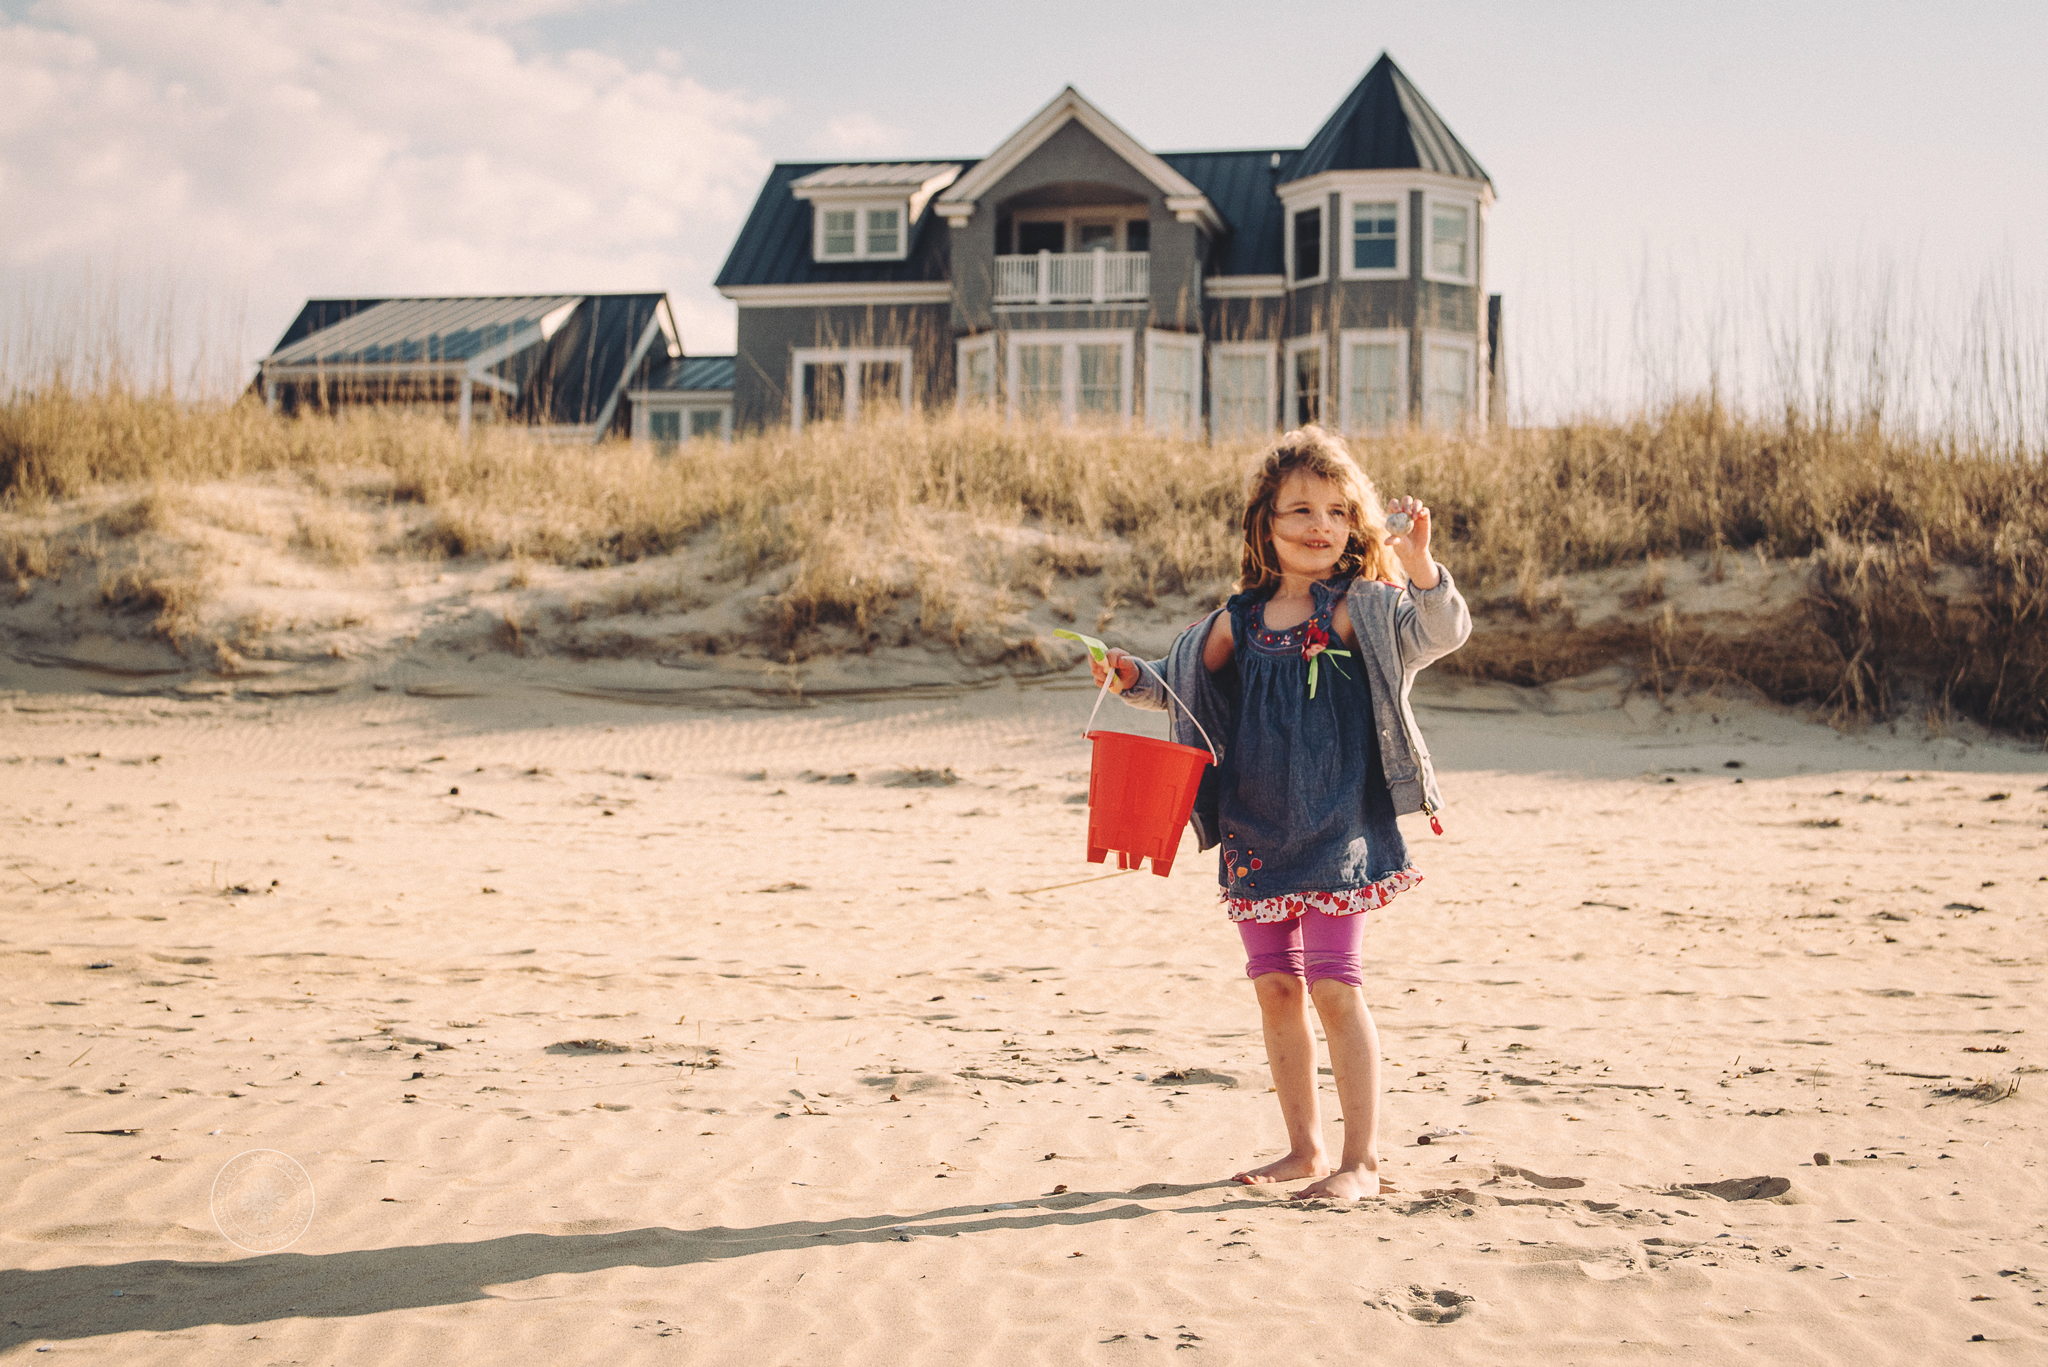 norfolk-lifestyle-photographers-melissa-bliss-photography-beach-session-girl-with-sand-pail